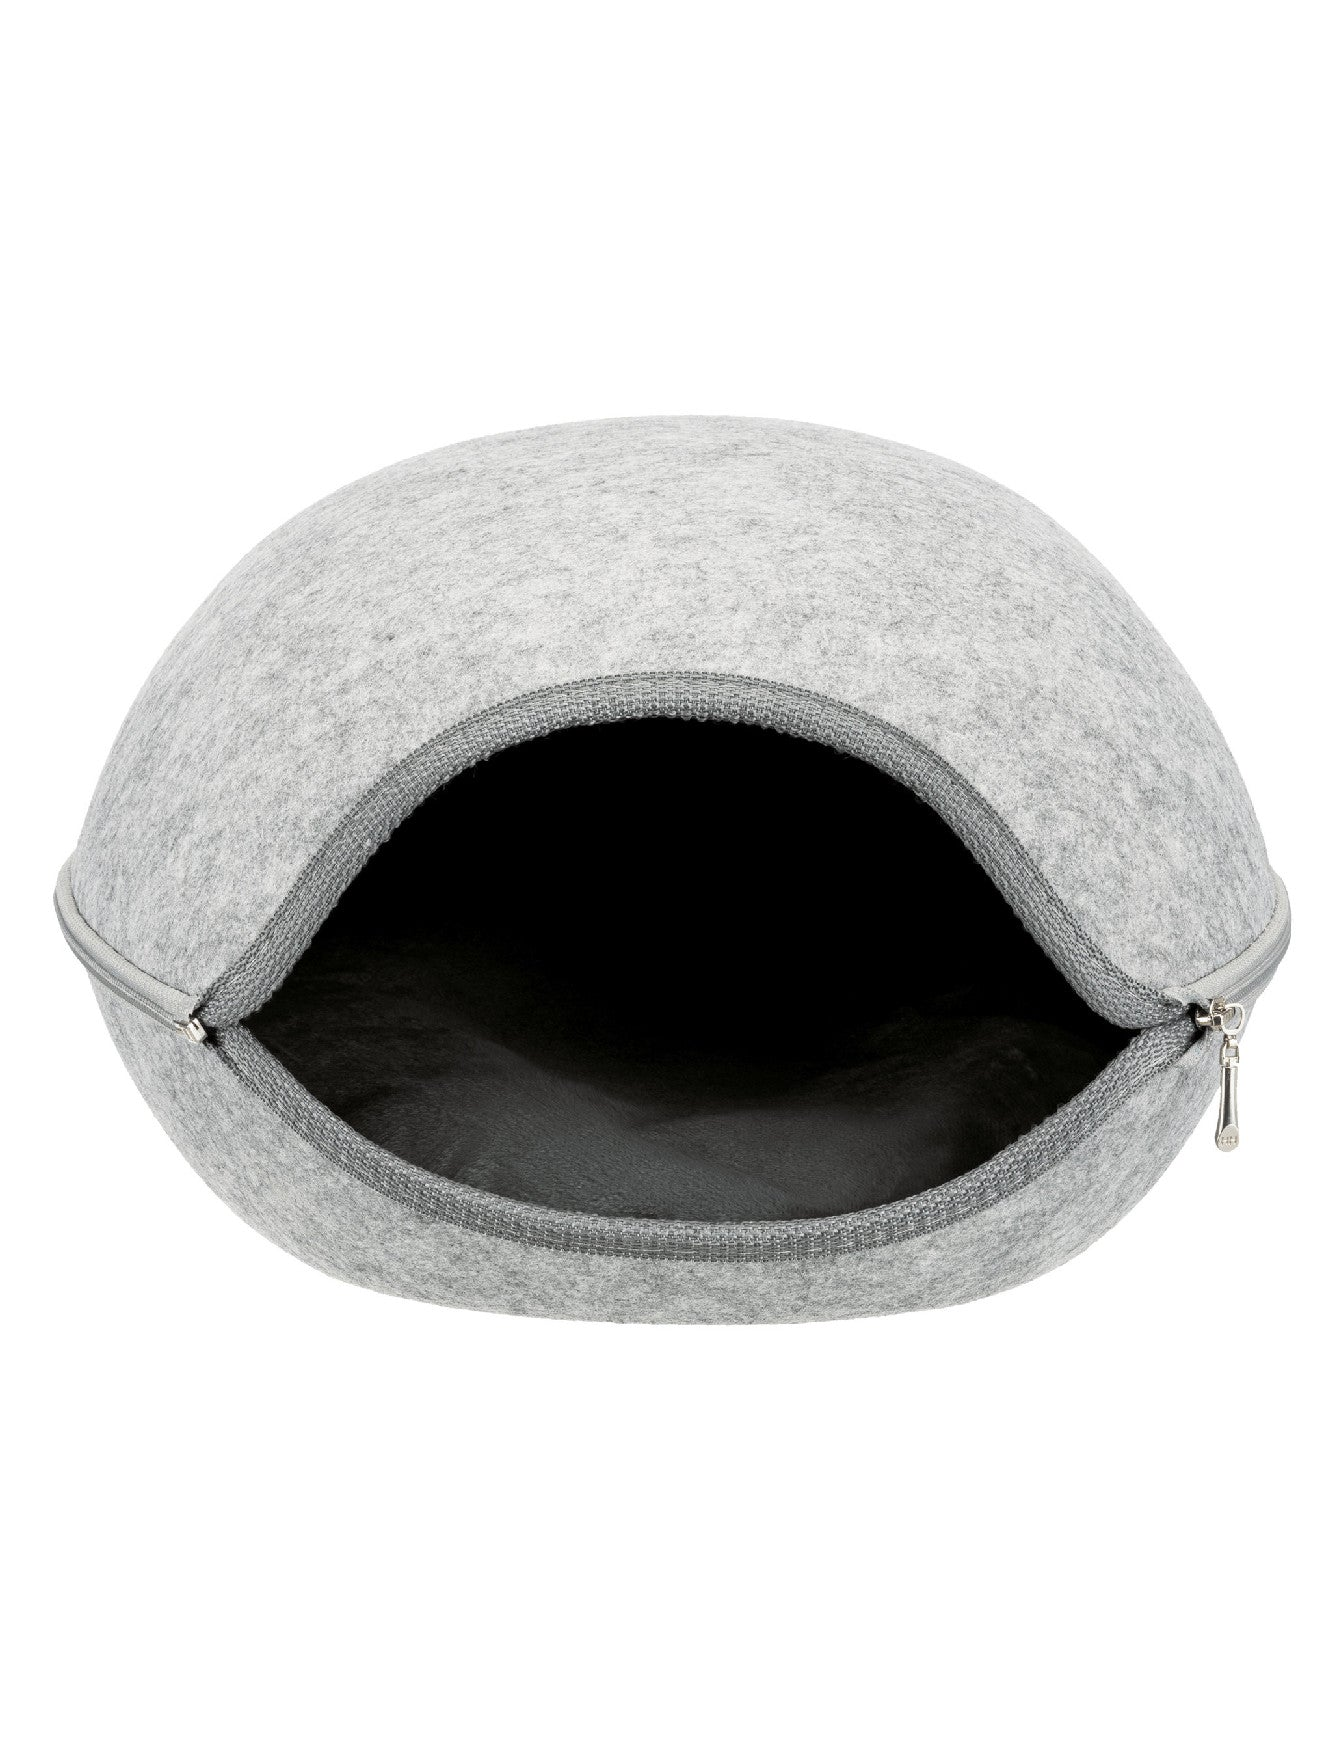 Trixie Luna Cuddly Cave Felt Light Grey For Dogs 40 × 24 × 46 cm | Perromart Online Pet Store Singapore